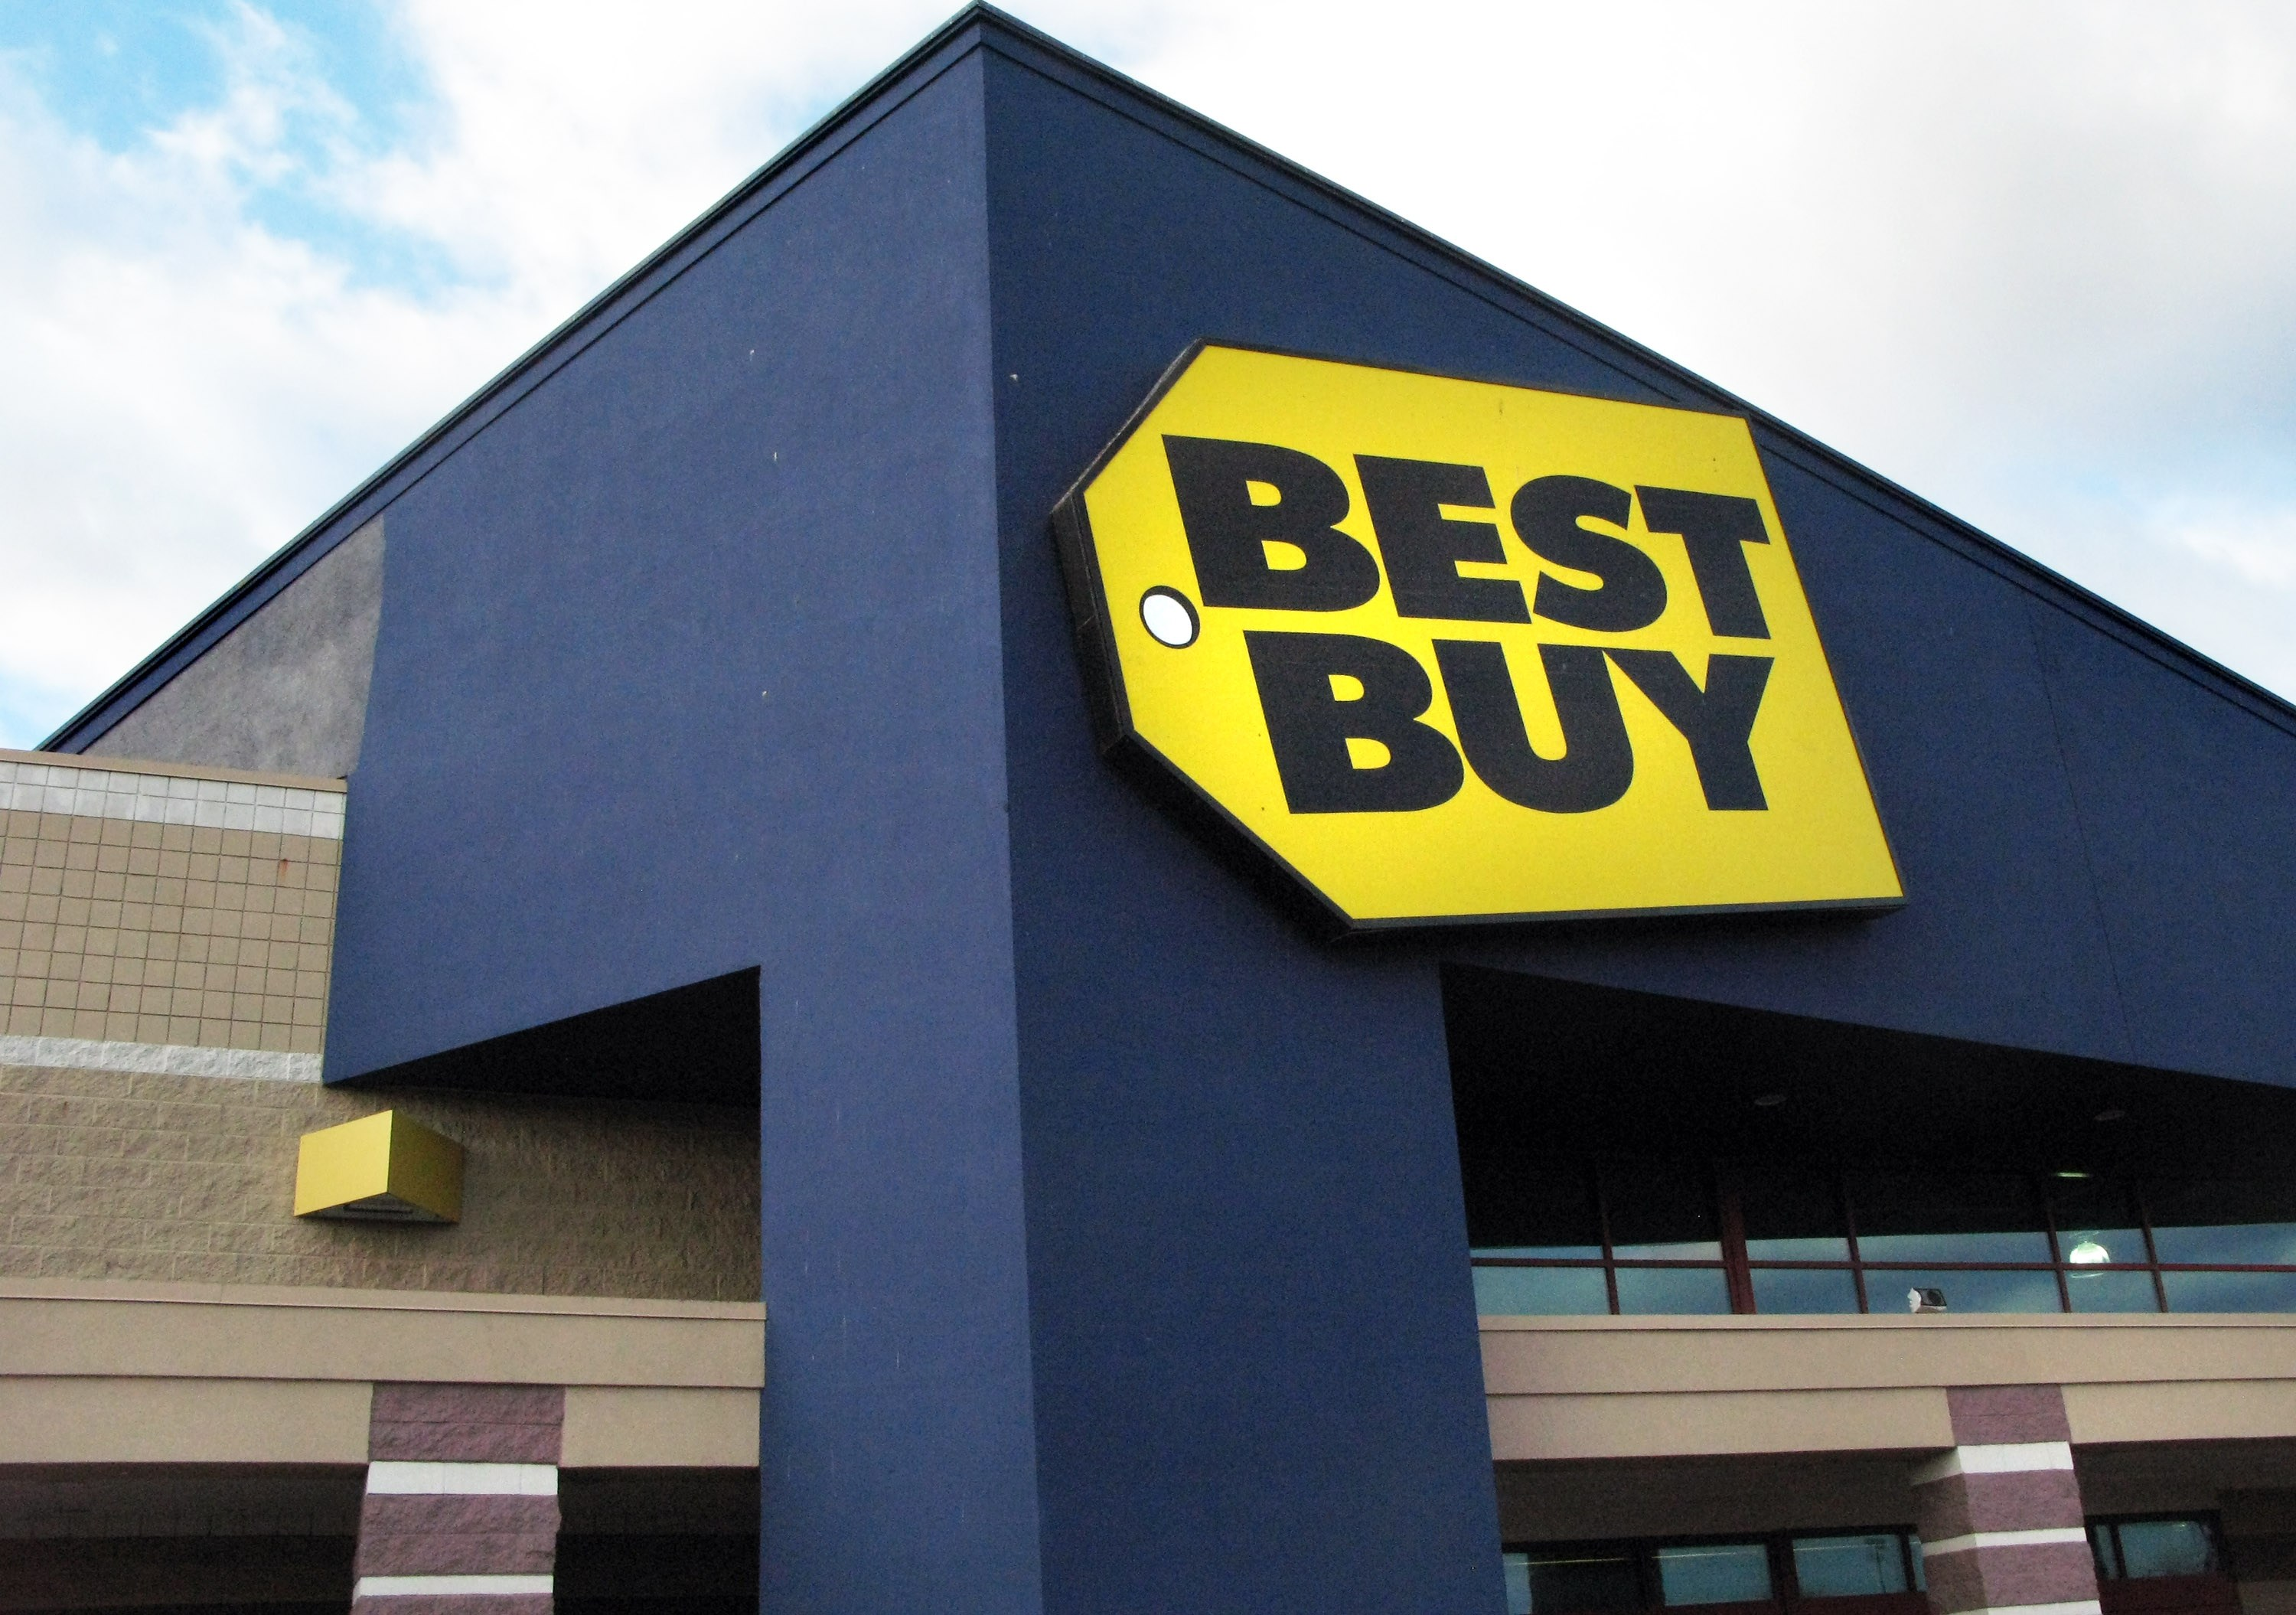 Best Buy: With Lots of Unbiased Advice | Tech.pinions - Perspective ...: techpinions.com/best-buy-with-lots-of-unbiased-advice/5366